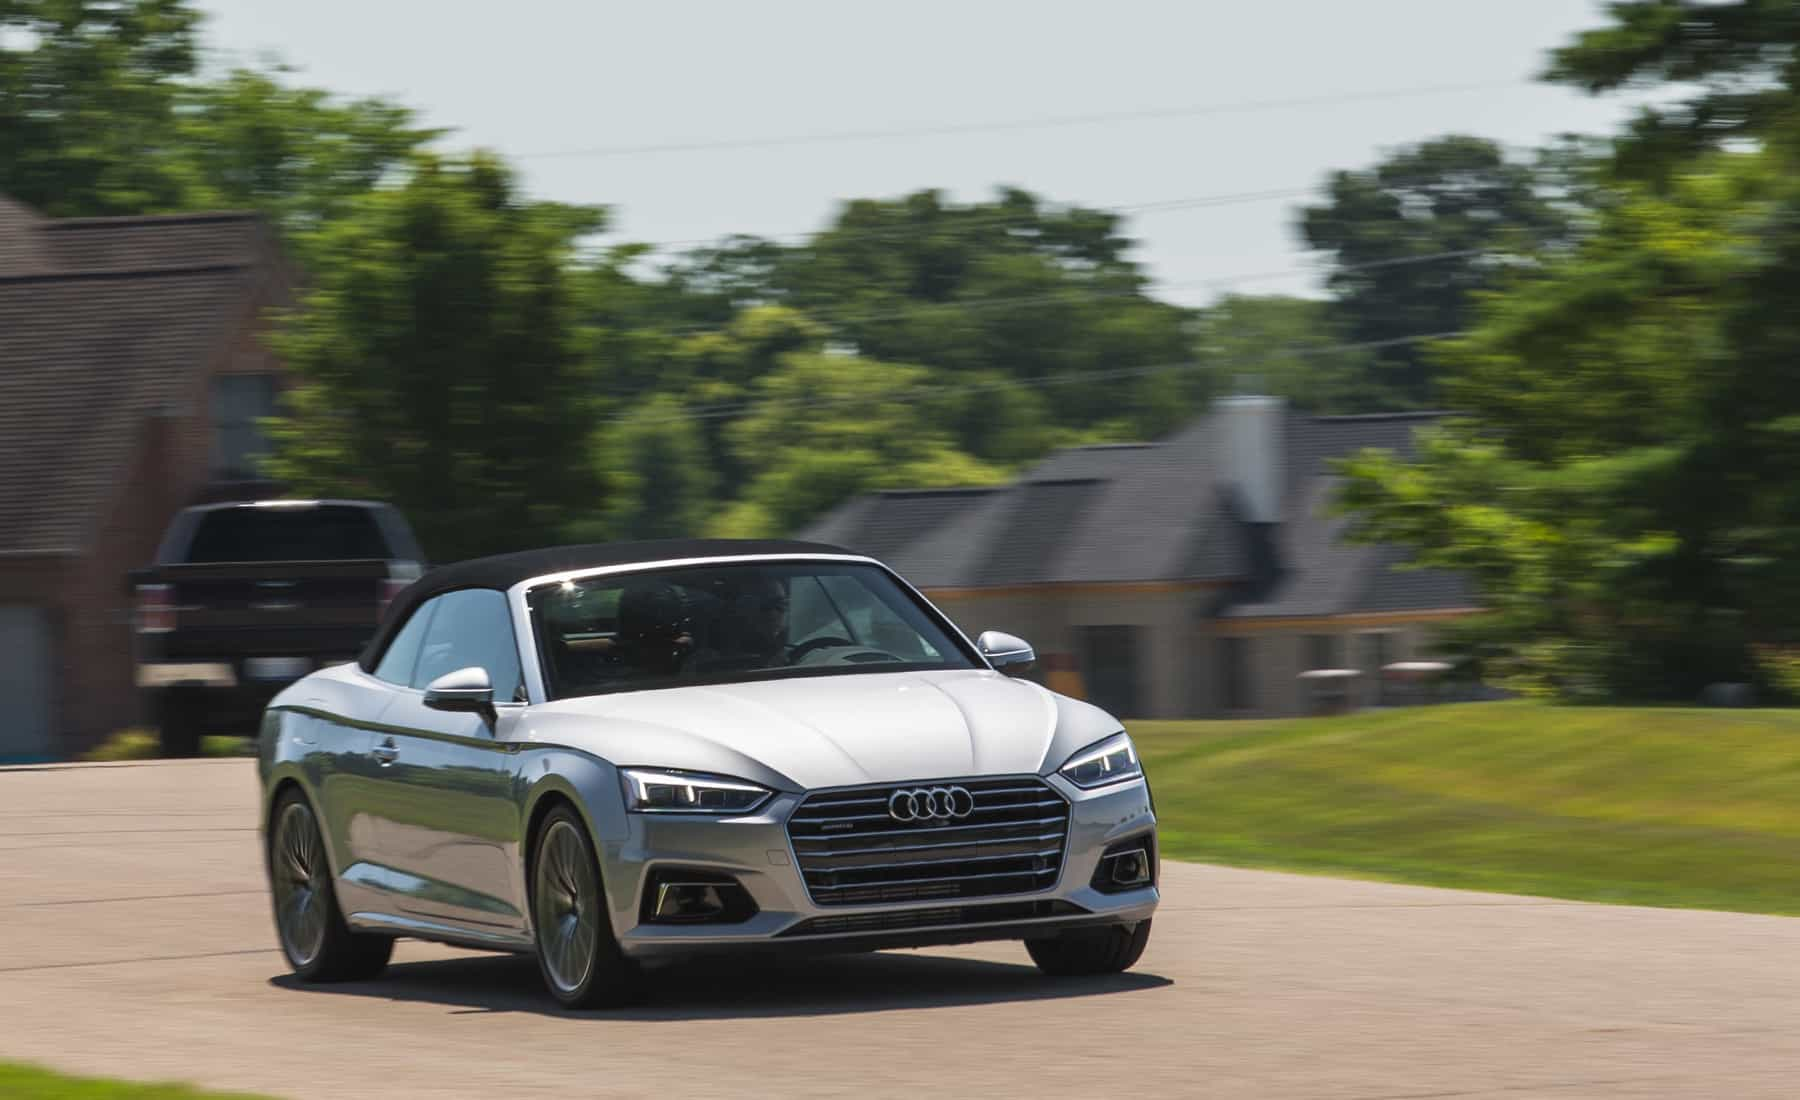 2018 Audi A5 Cabriolet Silver Metallic (Photo 39 of 45)